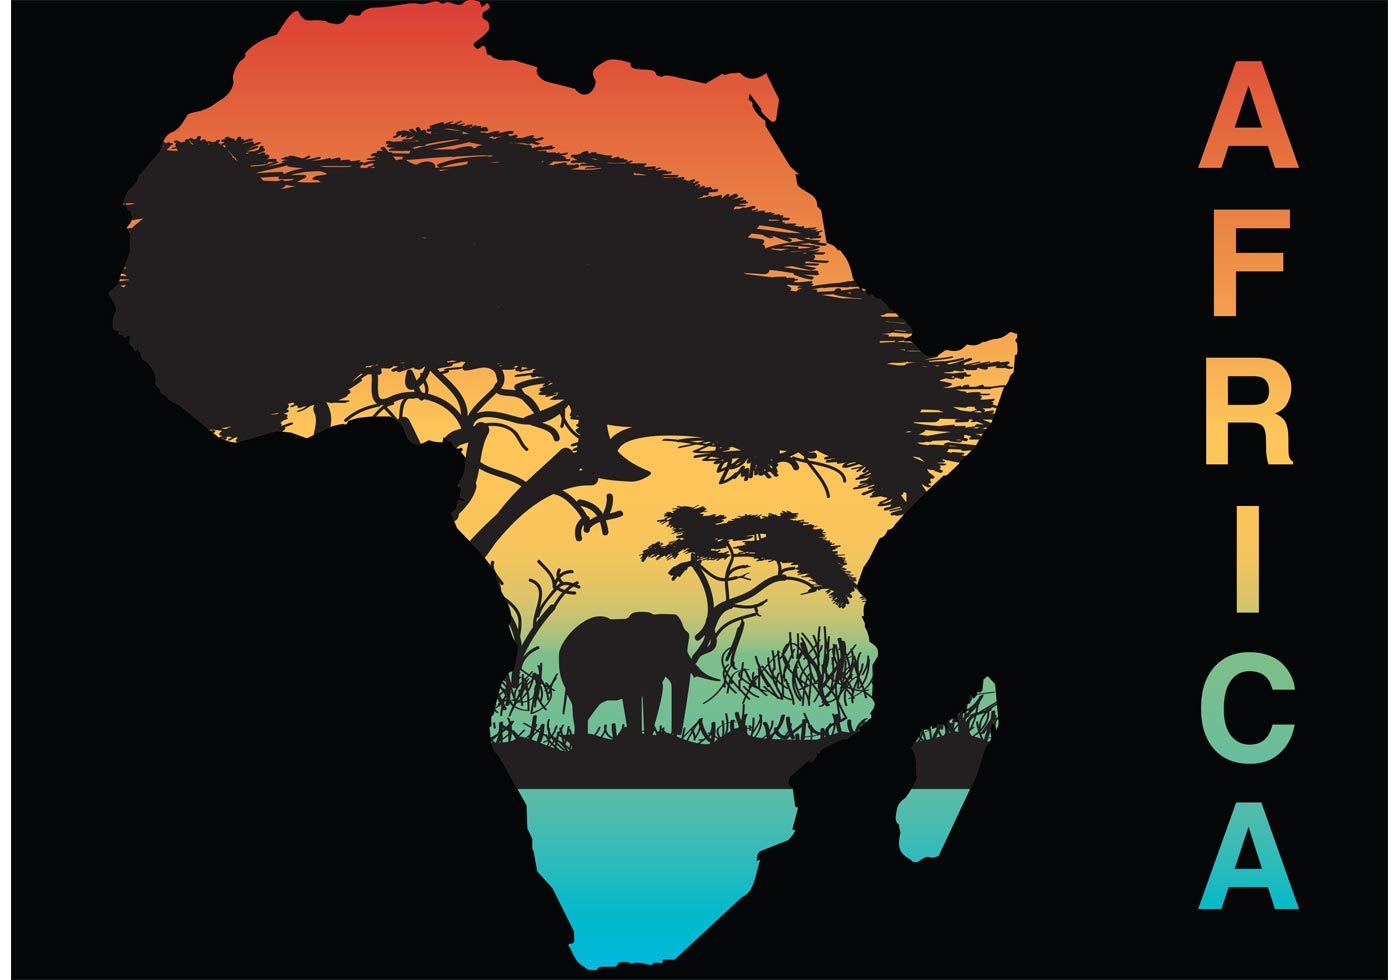 1400x980 Africa Silhouette Vector